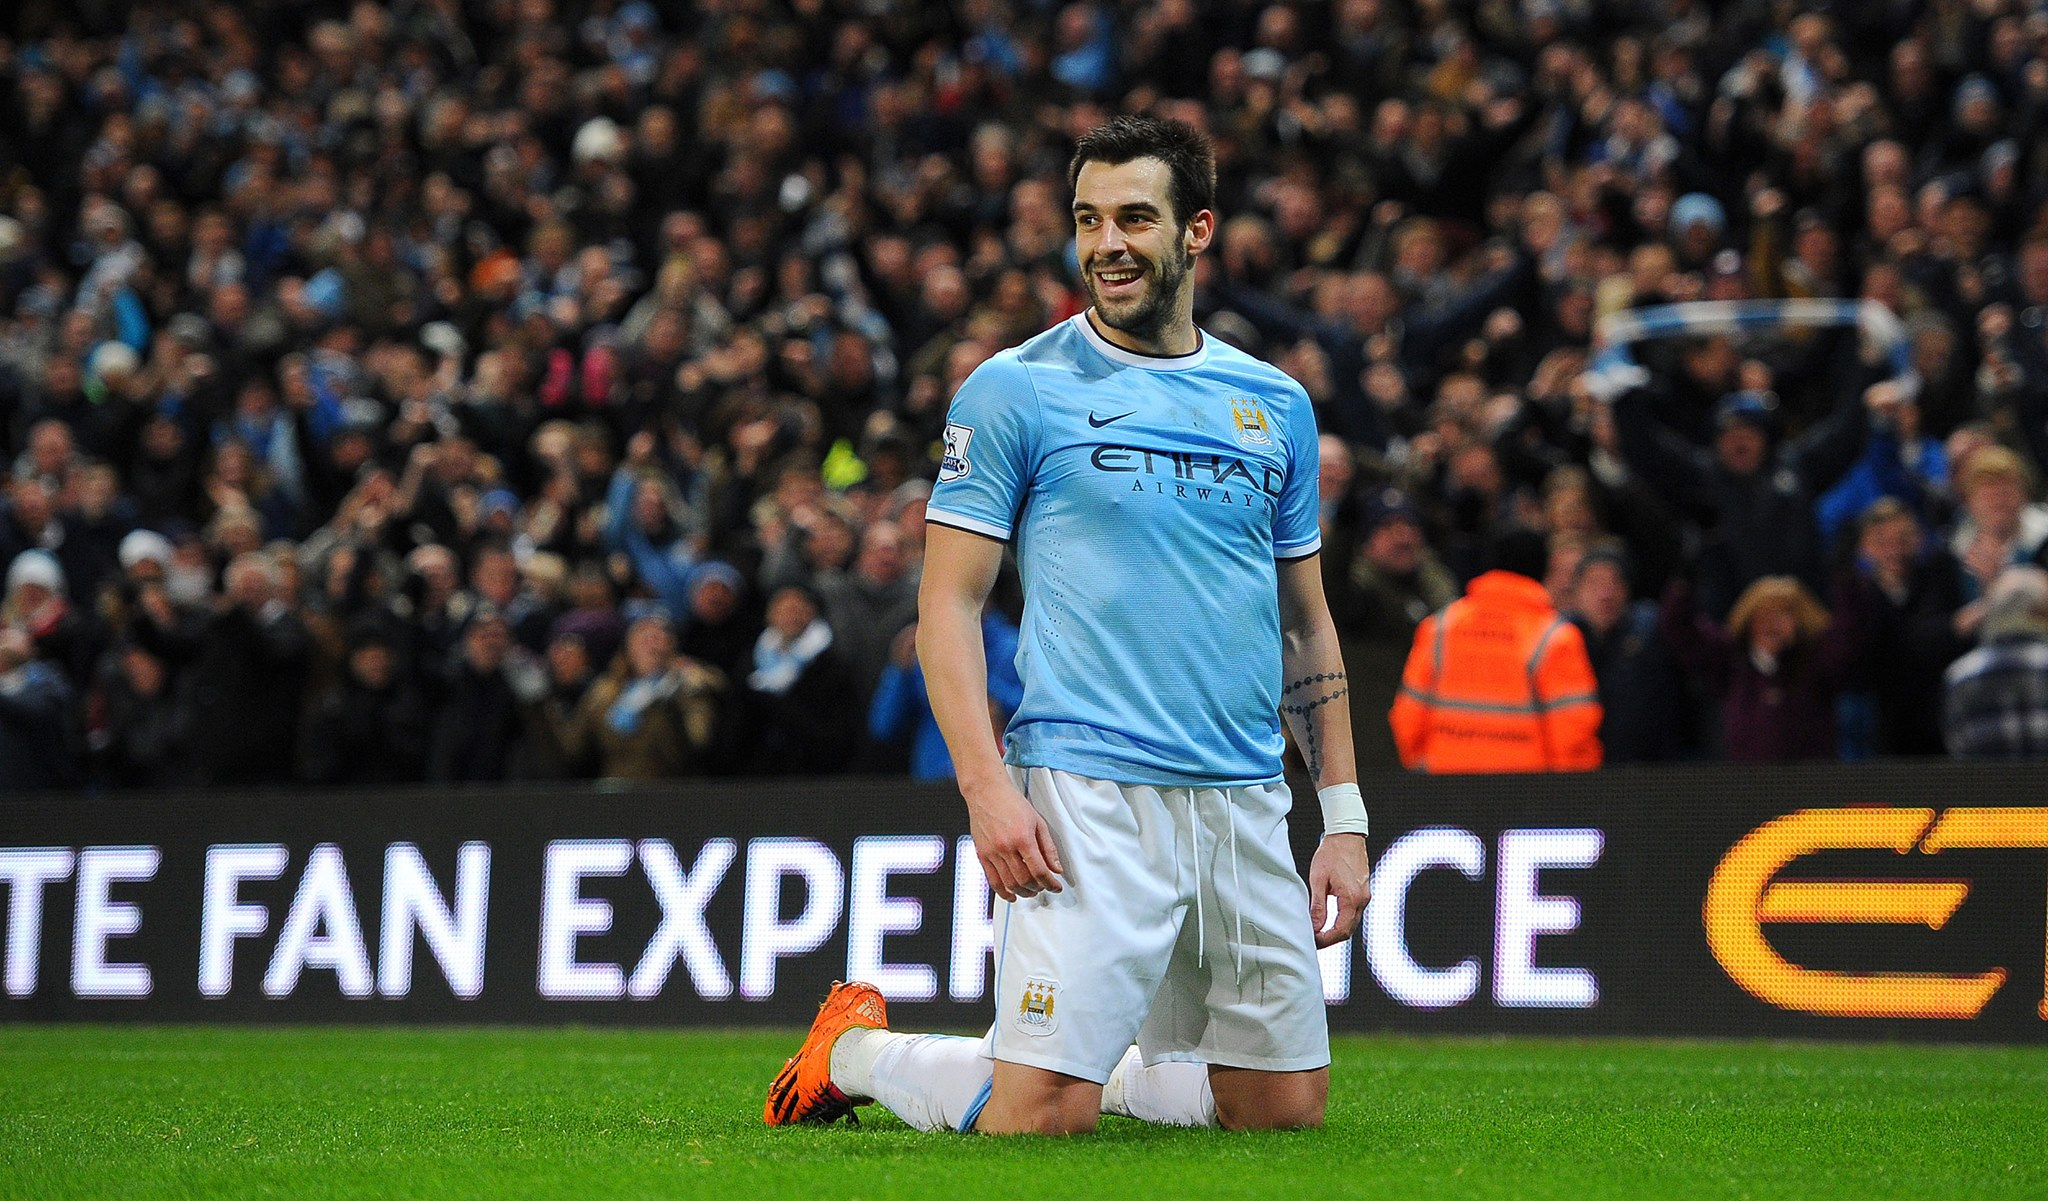 Cheeky Beast - Negredo's winner was handed to him by Liverpool's Mignolet Courtesy @MCFC